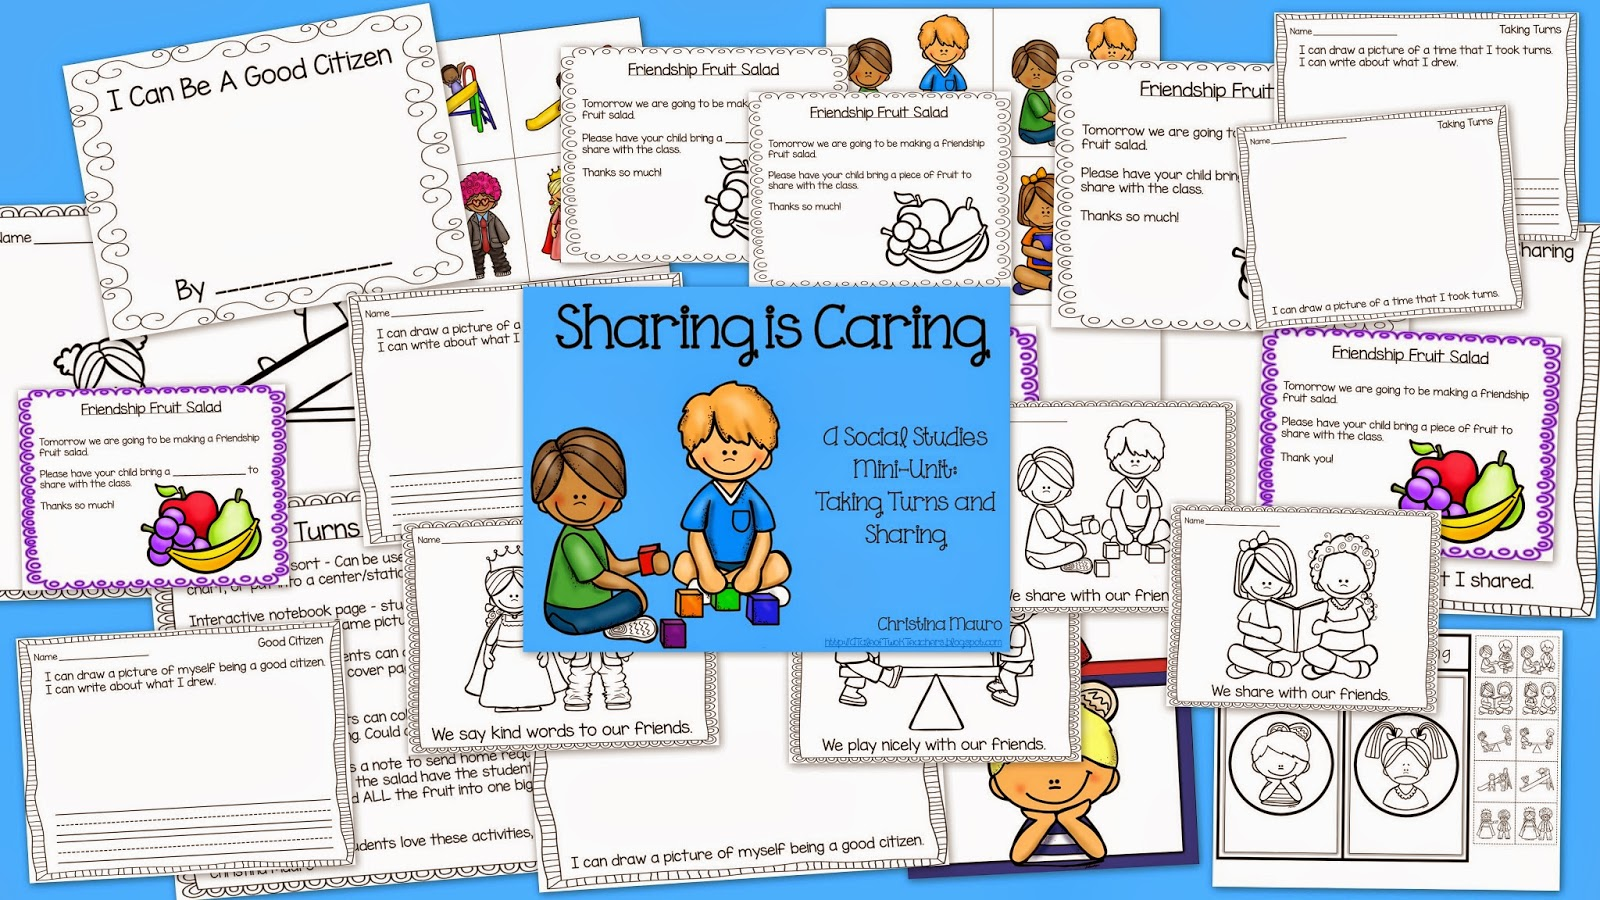 http://www.teacherspayteachers.com/Product/Sharing-is-Caring-A-Social-Studies-Mini-Unit-on-Taking-Turns-and-Sharing-1410495